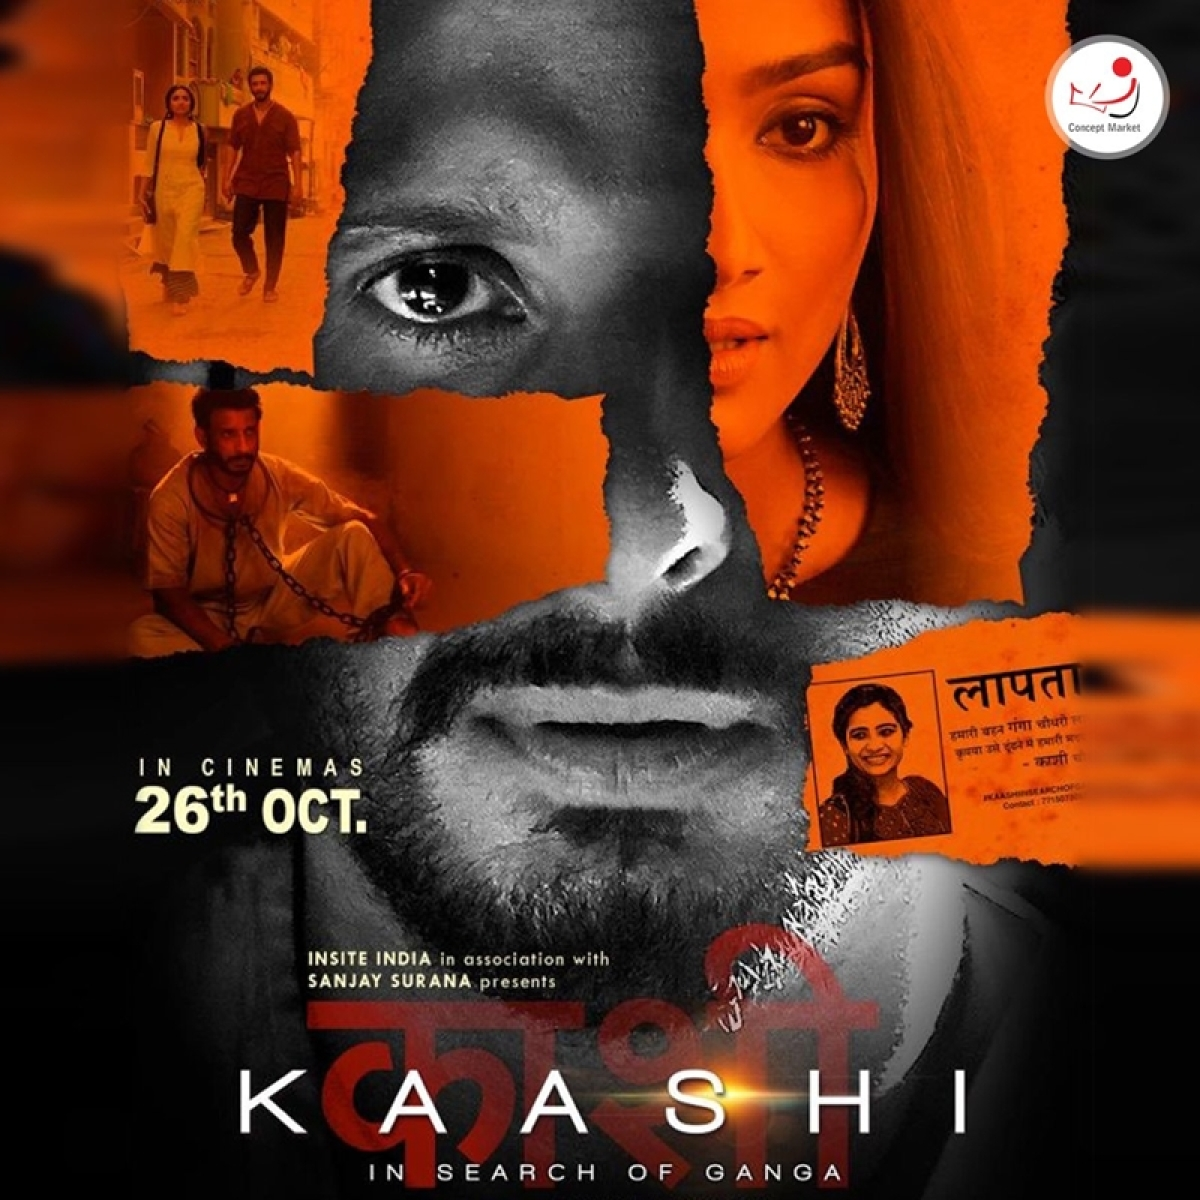 'Kaashi in Search of Ganga' Movie Review: Intriguingly layered revenge drama